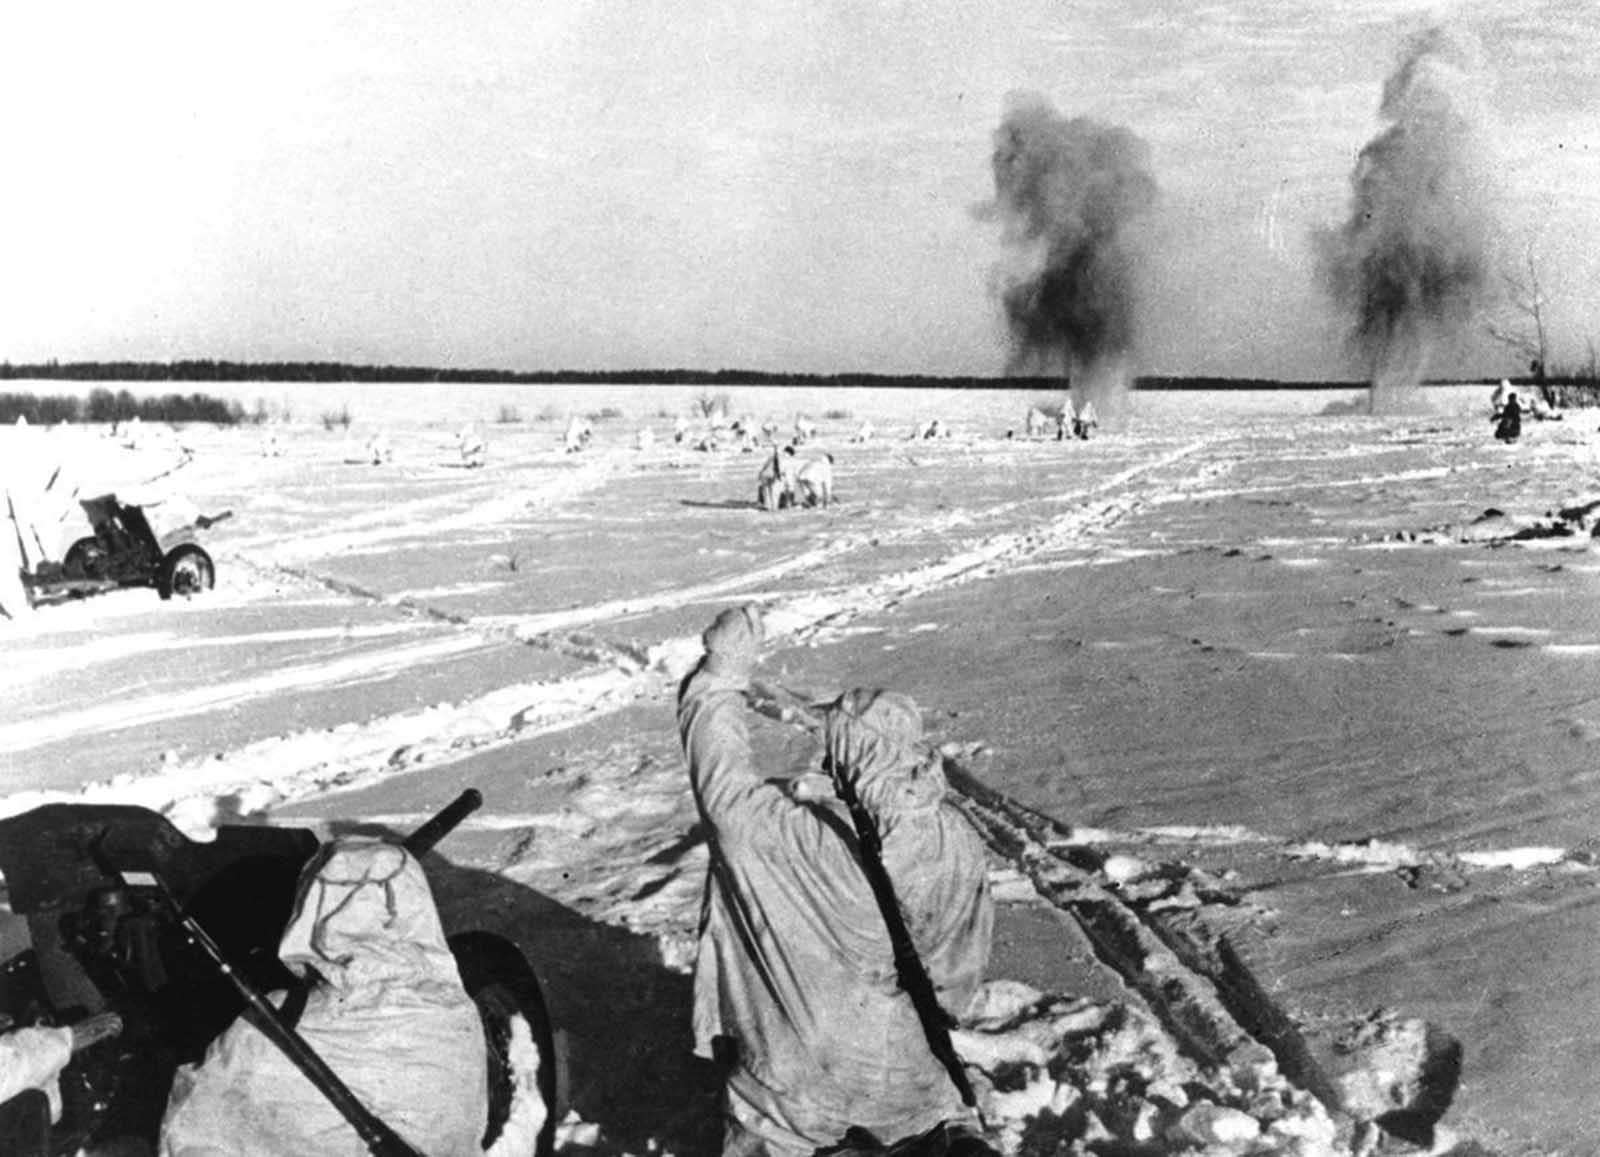 Red Army soldiers in camouflage gear on a snow-covered battlefield, somewhere along the German-Russian war front, as they advance against German positions on March 3, 1943.